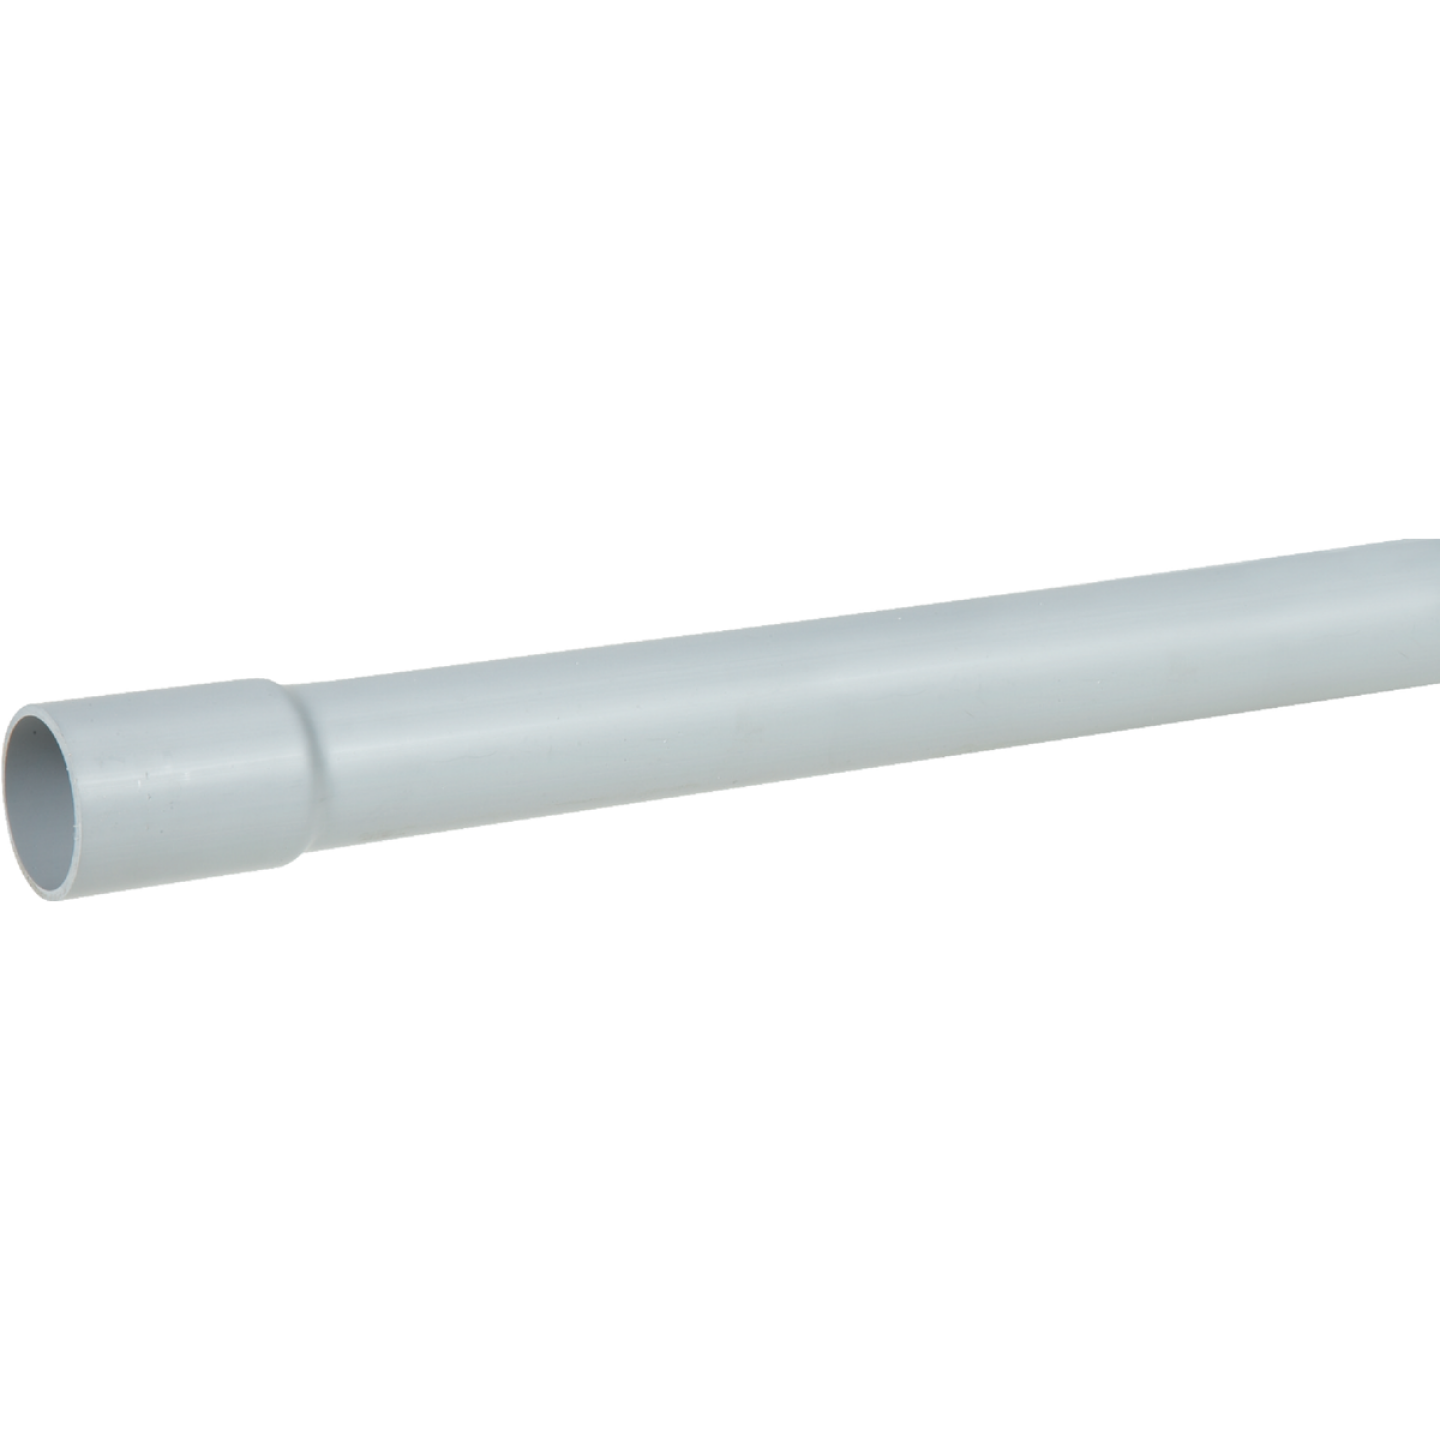 Allied 1/2 In. x 10 Ft. Schedule 80 PVC Conduit Image 1